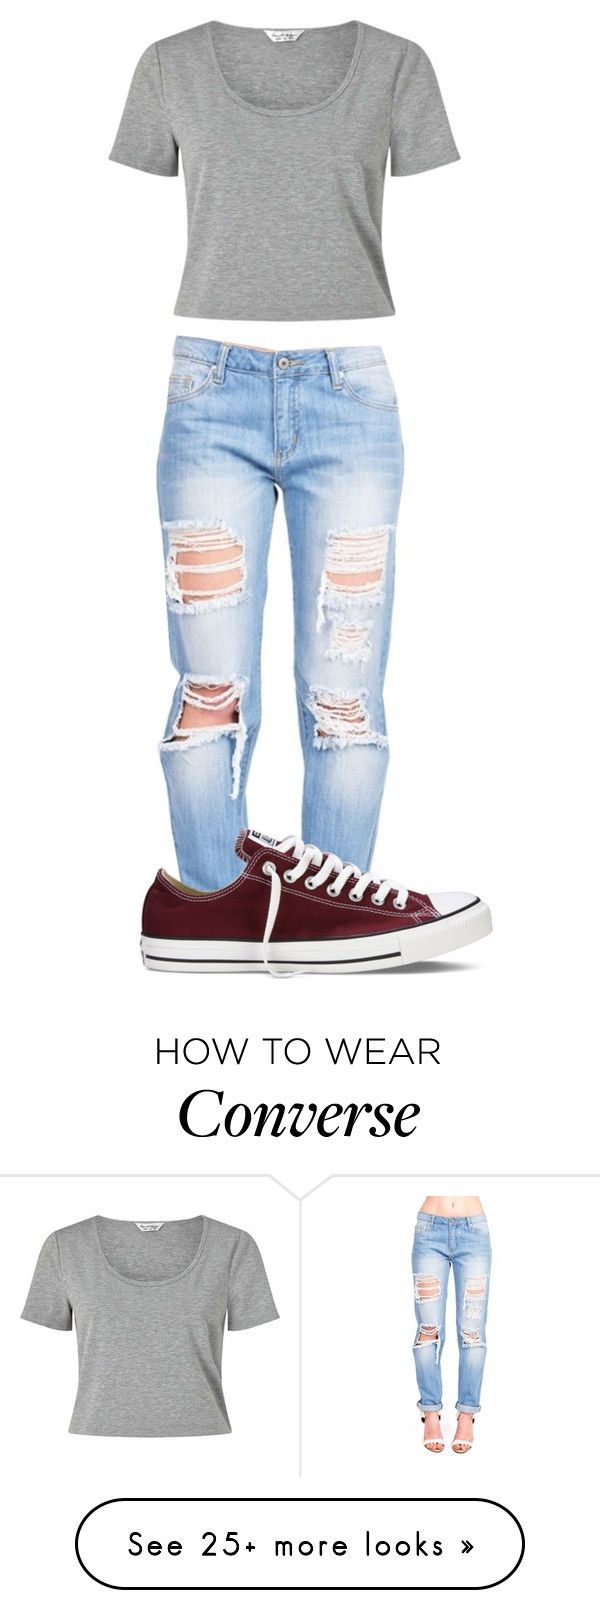 """Untitled #436"" by shiane816 on Polyvore featuring Miss Selfridge and Converse"